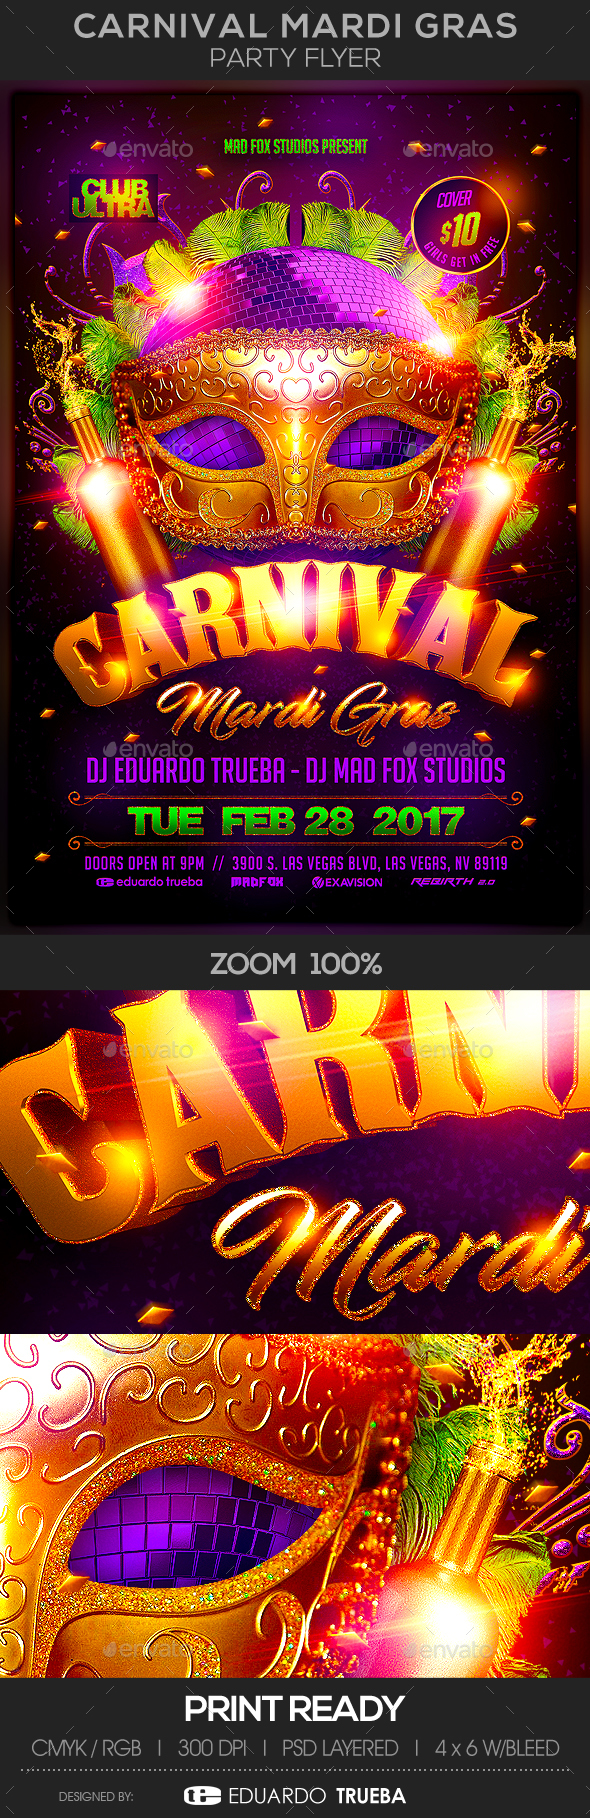 Carnival Mardi Gras Party Flyer - Events Flyers